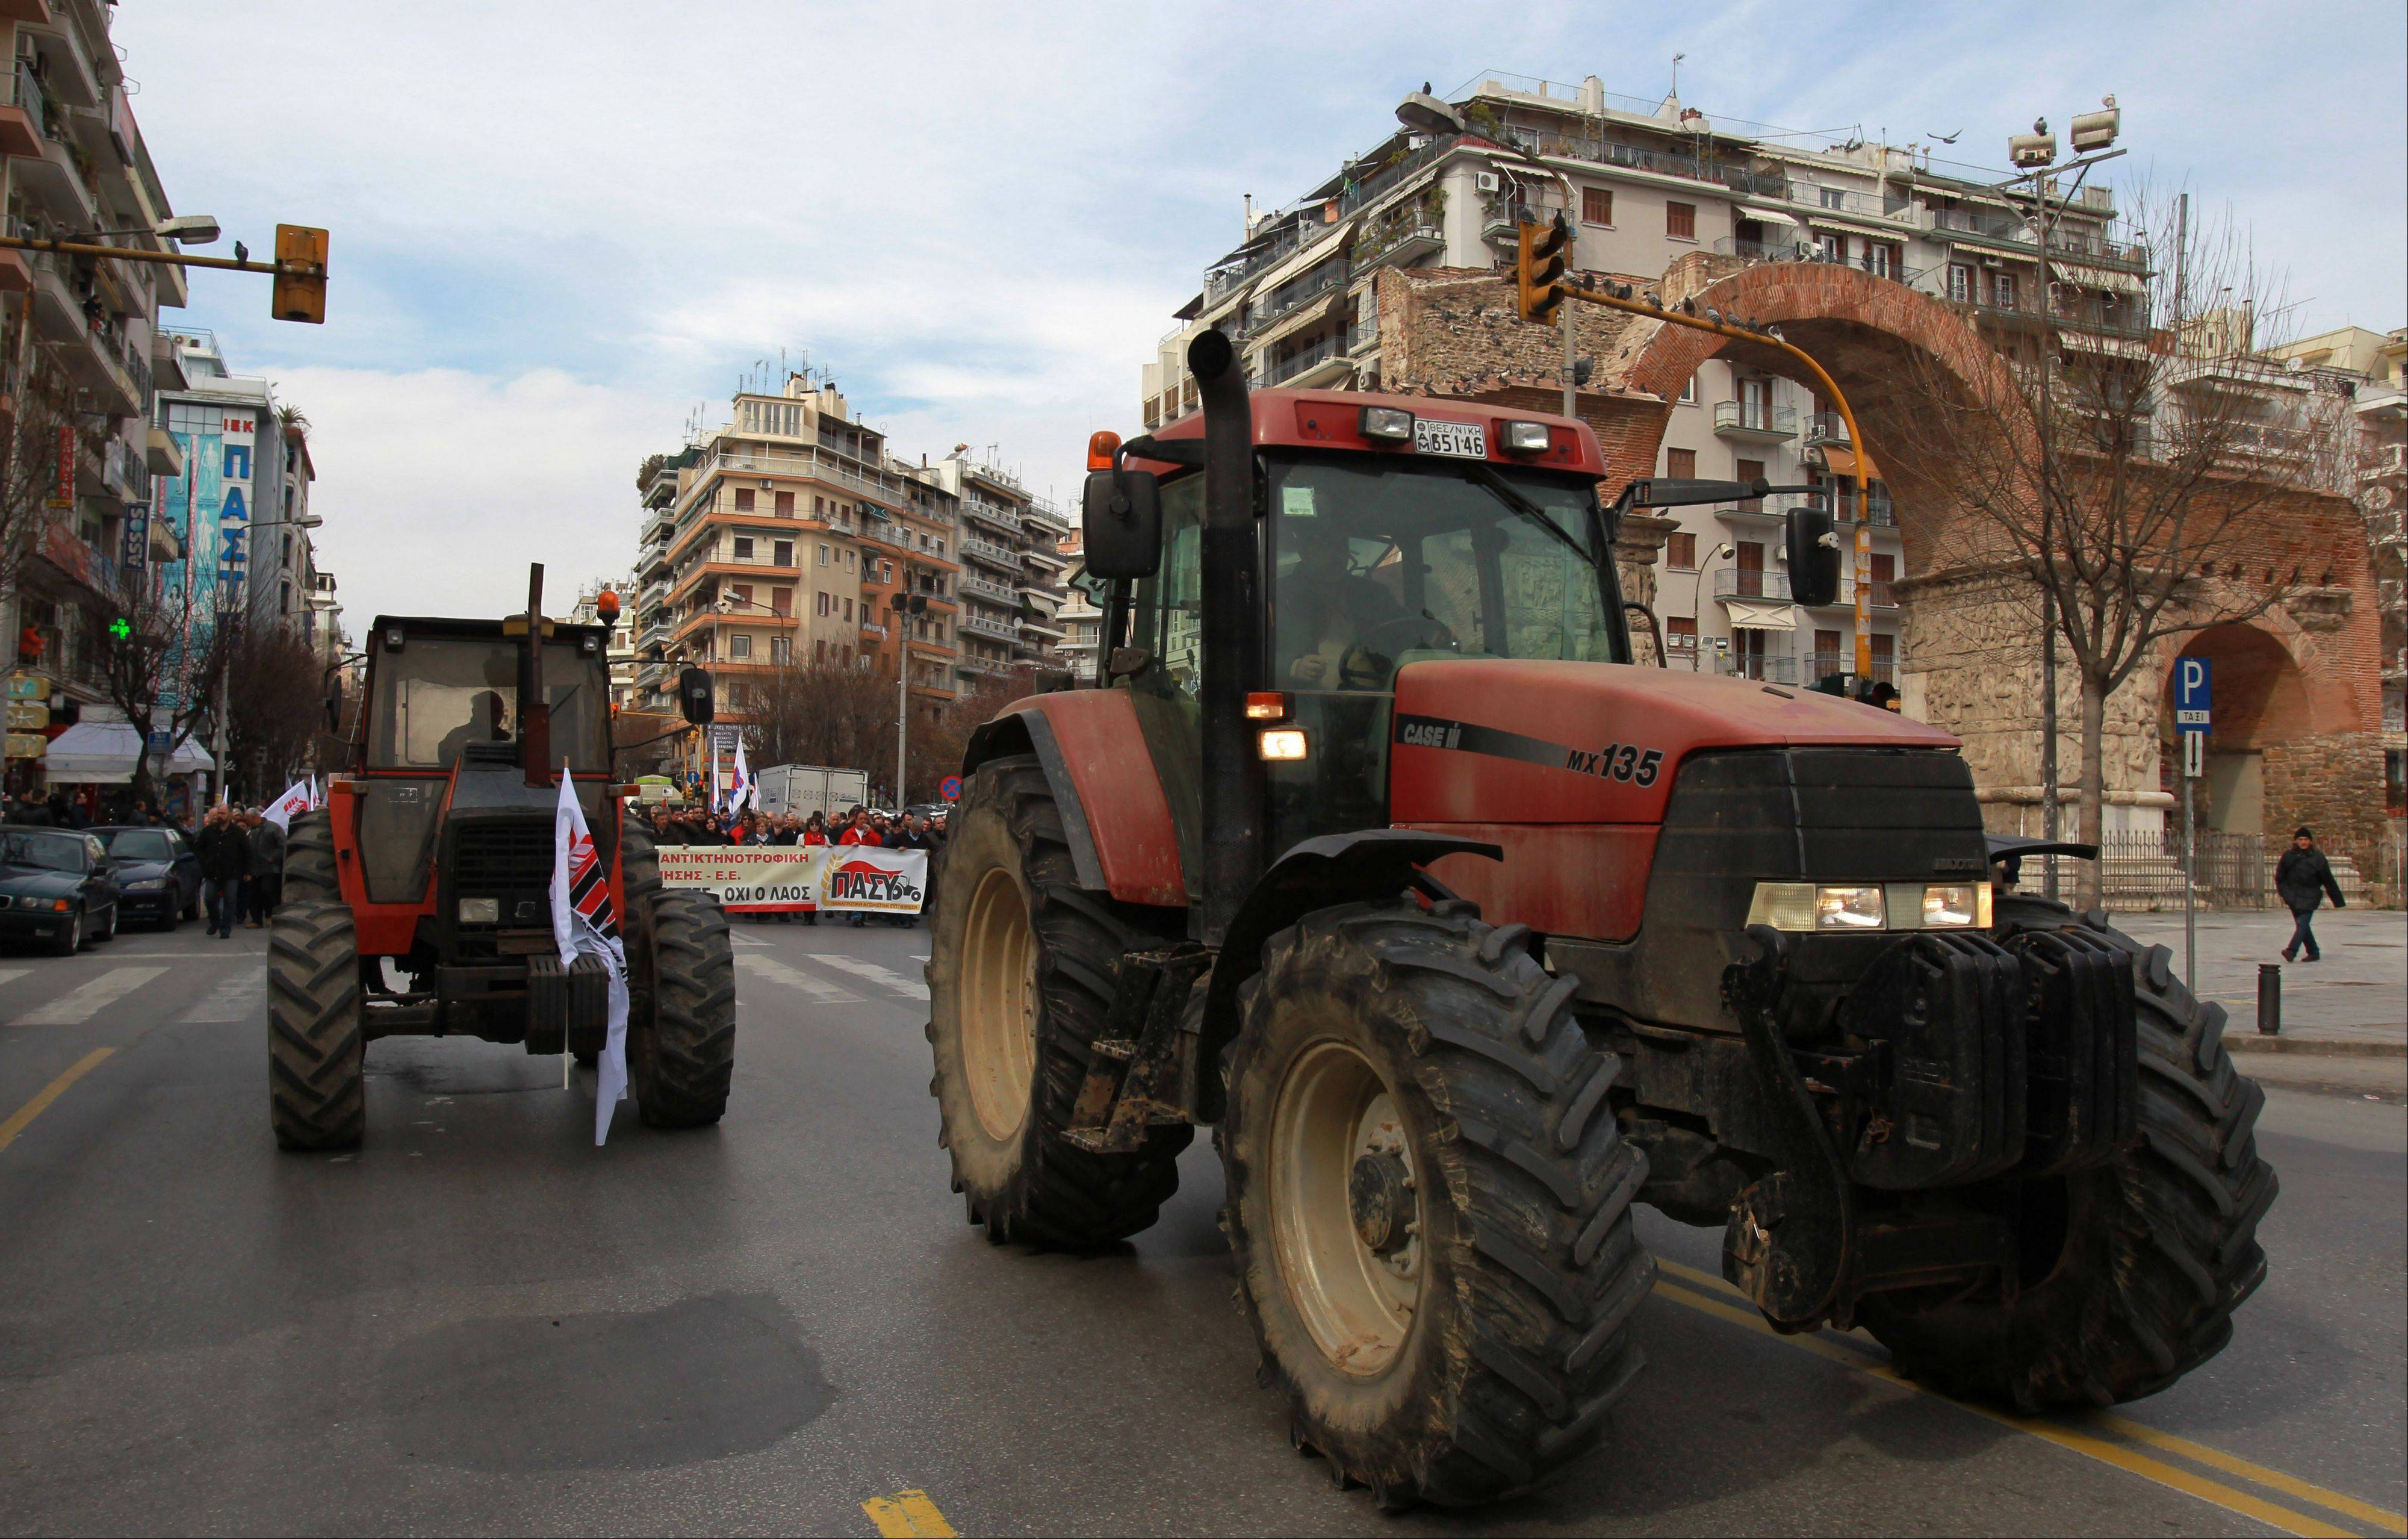 Farmers affiliated with the communist party drive their tractors through city center Saturday during a protest in the northern city of Thessaloniki Greece. Farmers complain that their production costs are too high, and want Greece's conservative-led coalition government to reduce the price of fuel, scrap plans to increase taxation on agriculture and cut sales tax on their goods.